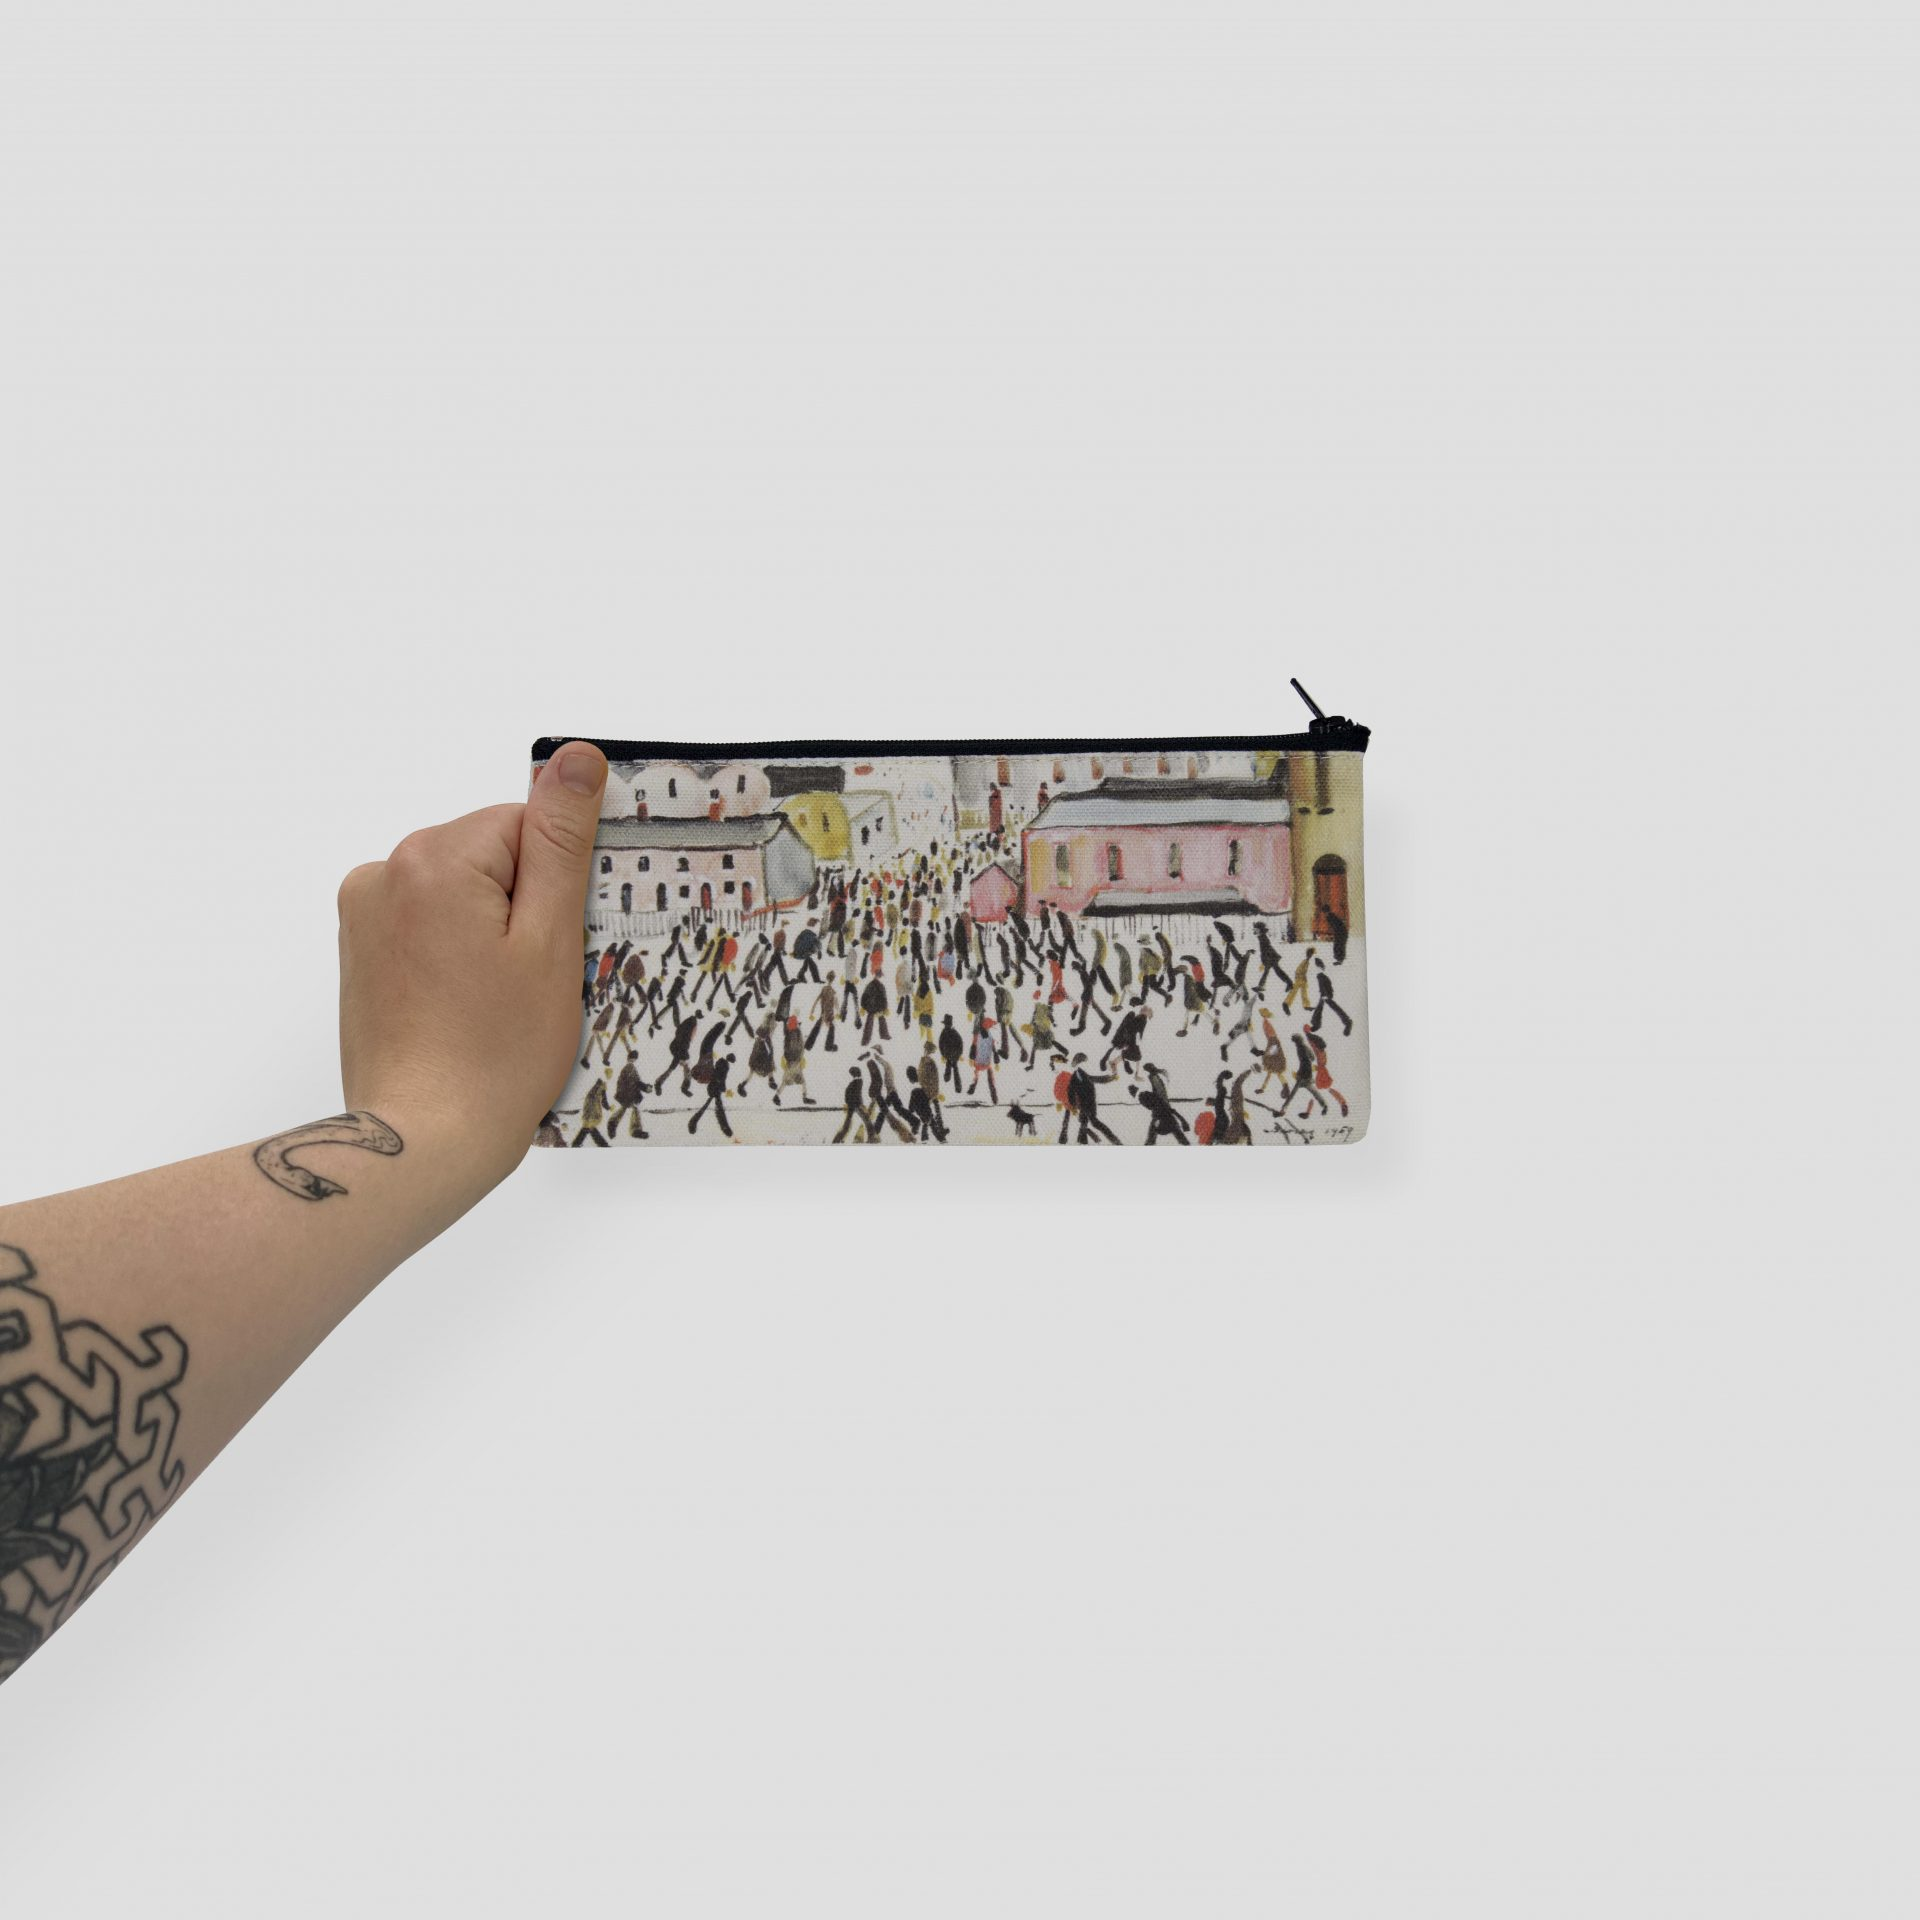 Custom printing on textile like this pencil case by Paul Bristow in the UK